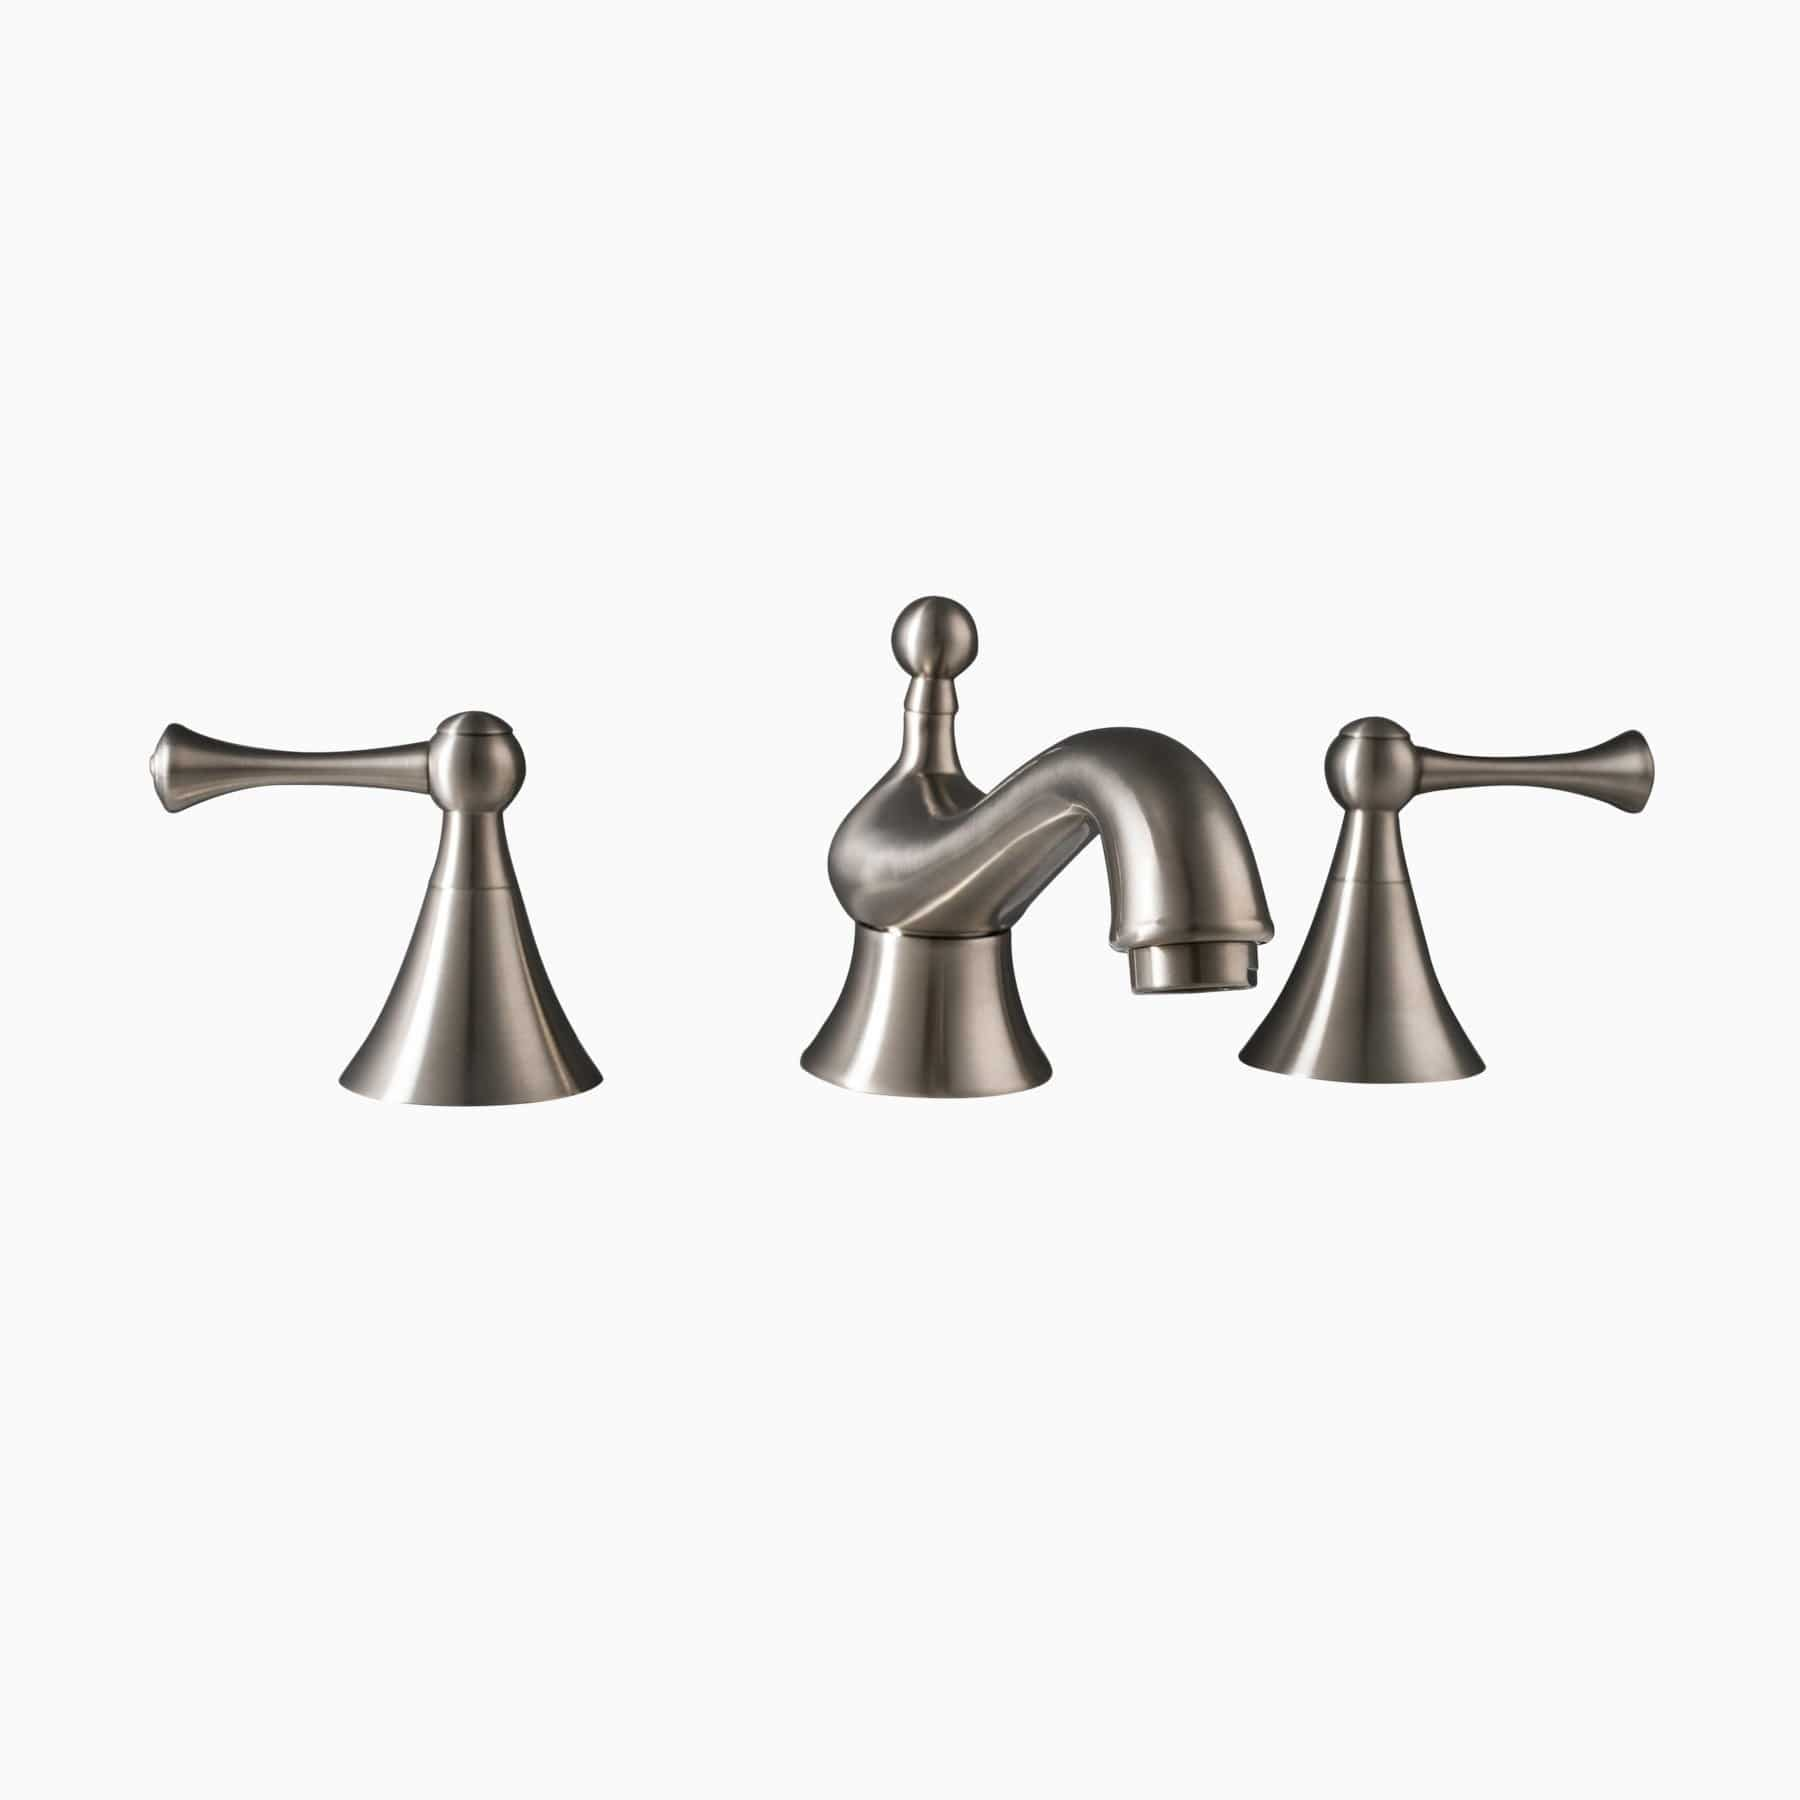 Andante 822 Widespread Sink Faucet - Agreeable Gray Mood Board's